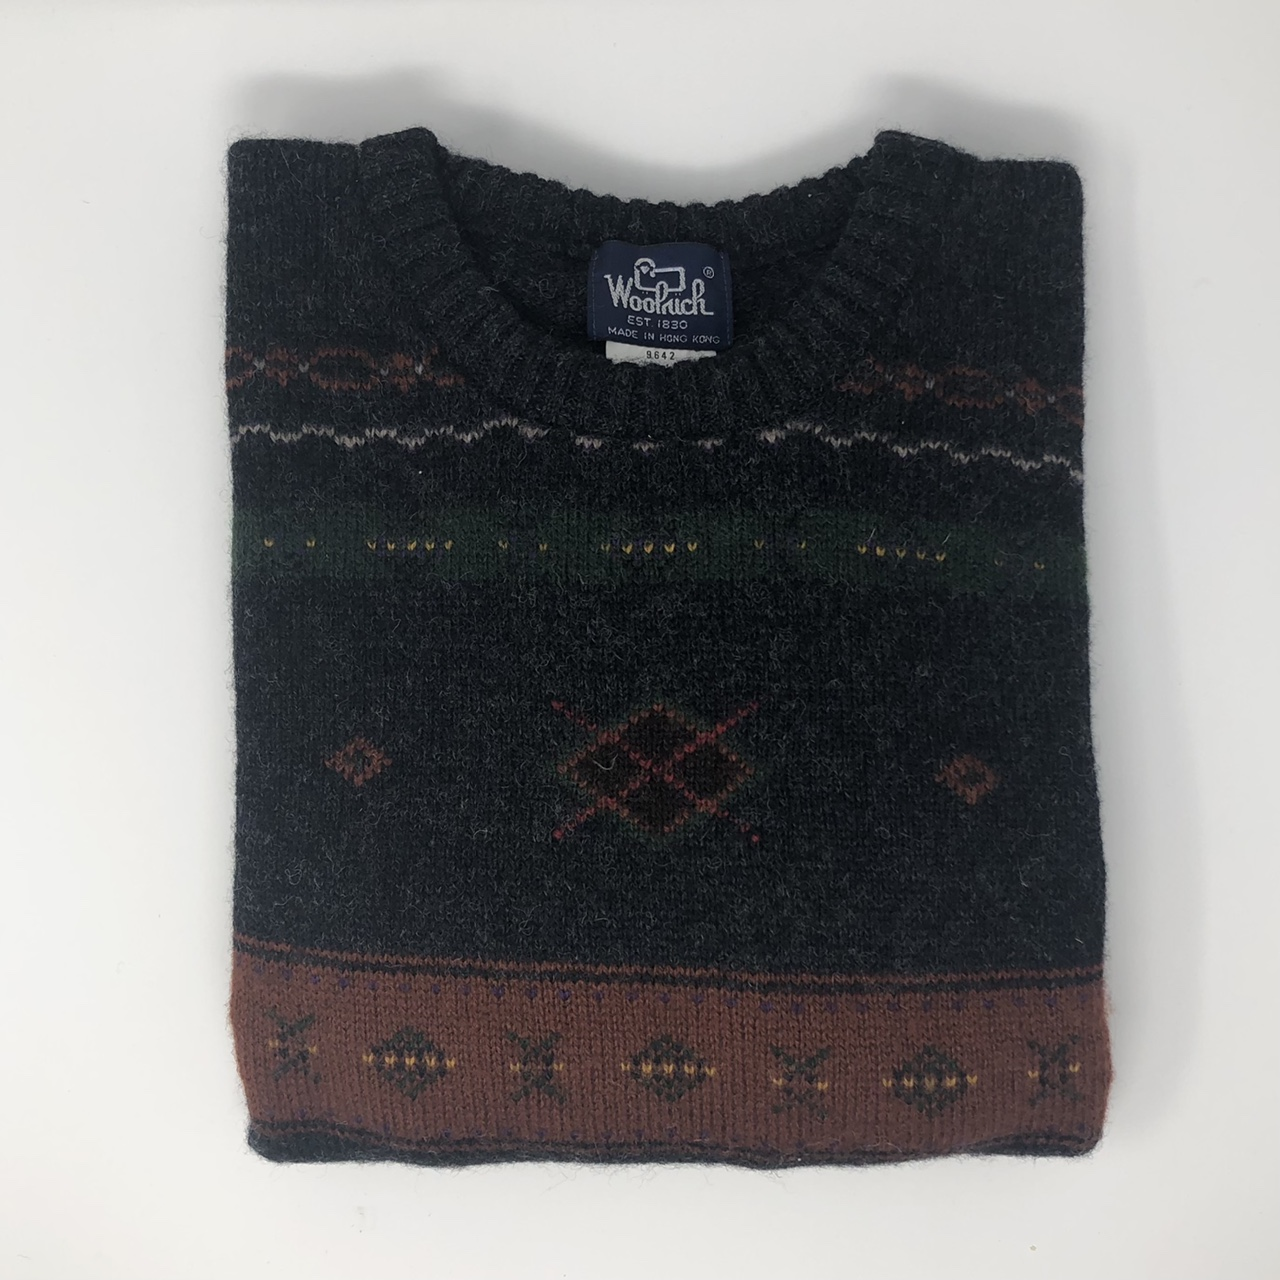 Product Image 1 - Woolrich Wool Sweater Size L  My